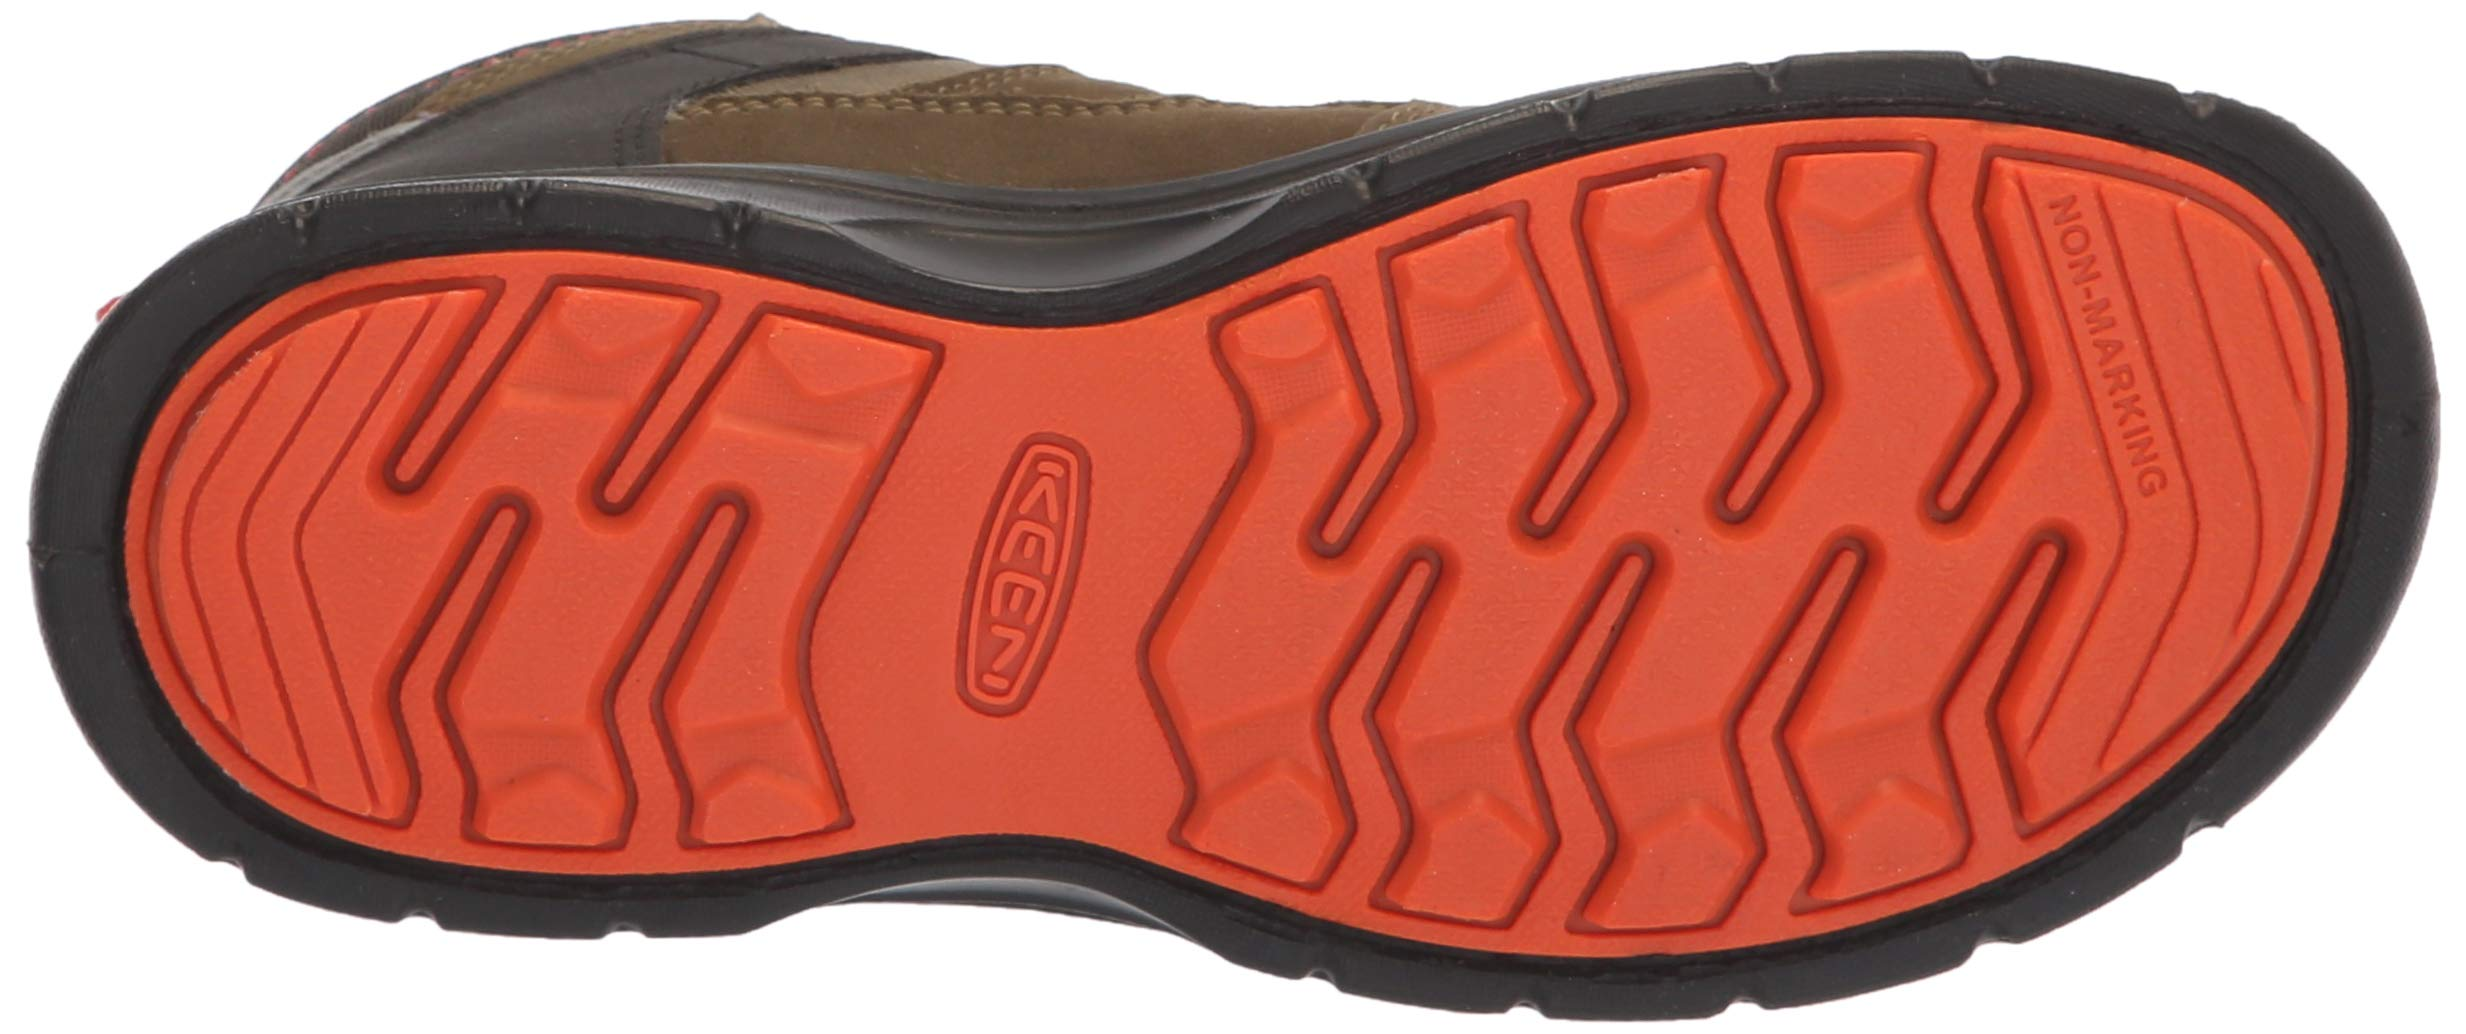 KEEN Unisex HIKEPORT MID WP Hiking Boot, Martini Olive/pureed Pumpkin, 12 M US Little Kid by KEEN (Image #3)